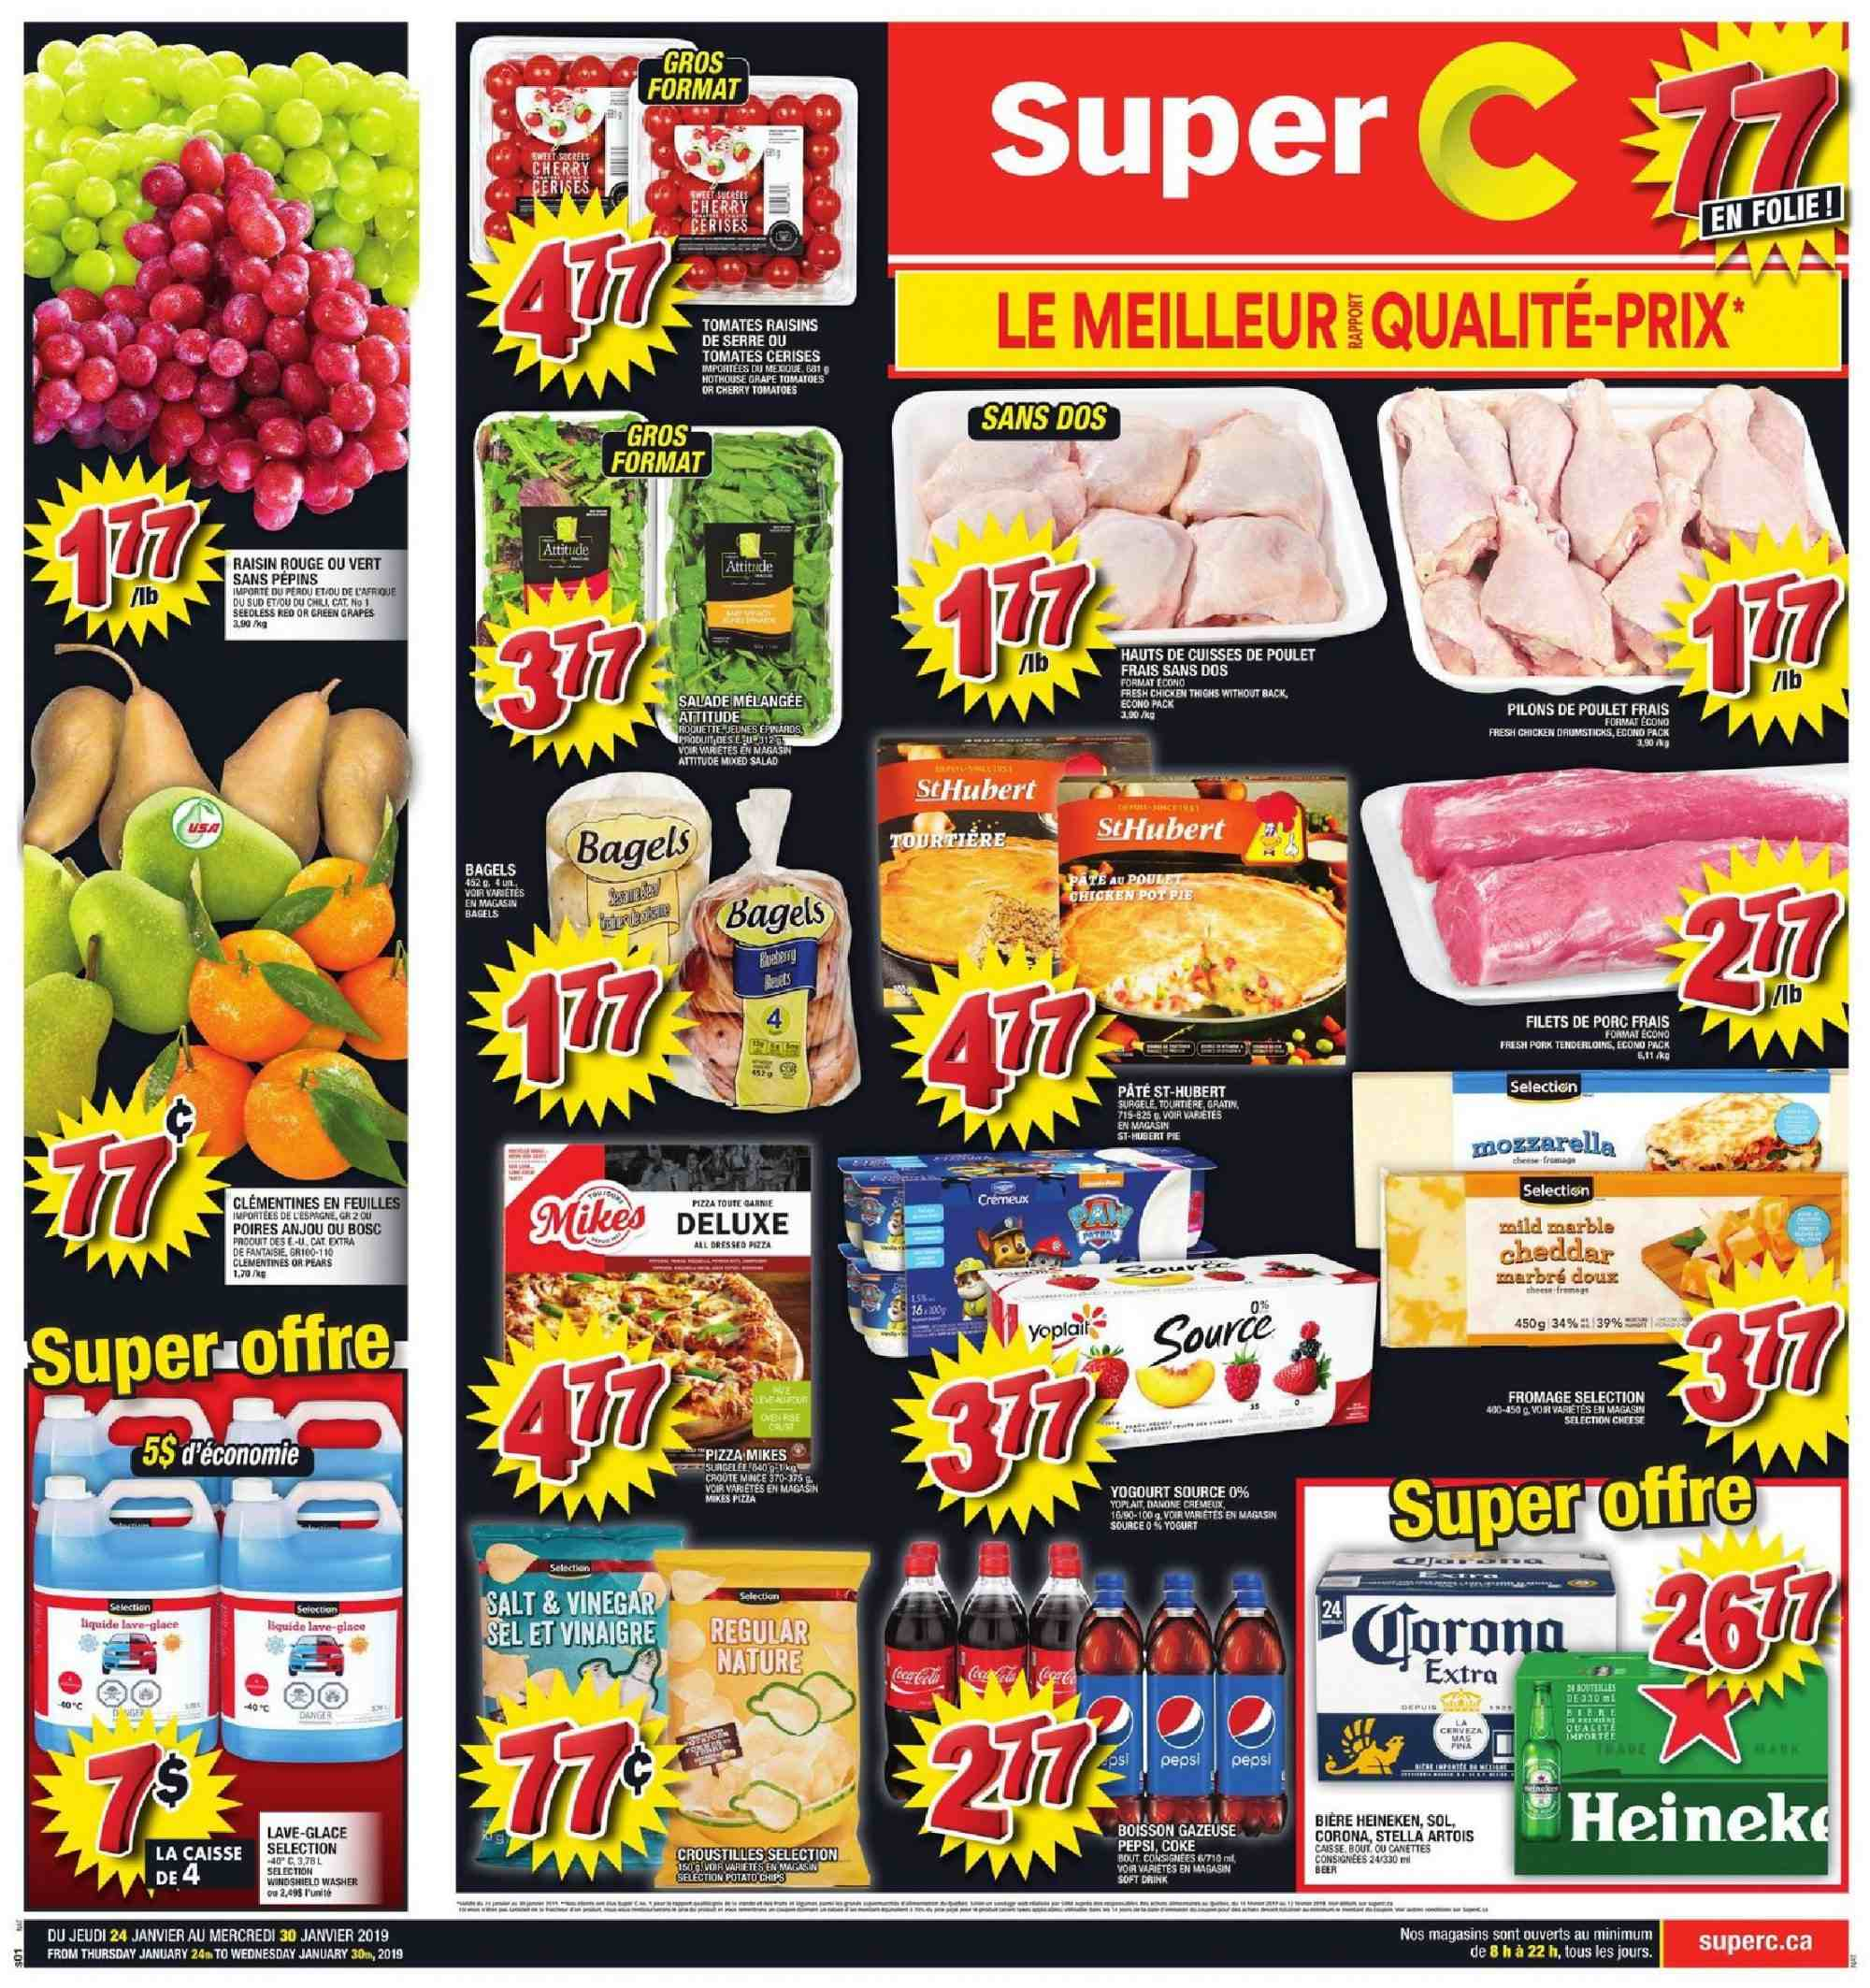 Super C Flyer - January 24, 2019 - January 30, 2019 - Sales products - bagels, clémentines, coca cola, grapes, mozzarella, raisins, stella artois, tomatoes, vinegar, pizza, pork meat, cheddar, chicken, pears, pepsi, chicken thighs, cheese, danone, salad, tomates, poulet, porc, salade, bière, boisson, cerise, feuilles, fromage, glace, vinaigre, marble, rouge, pâtes. Page 1.